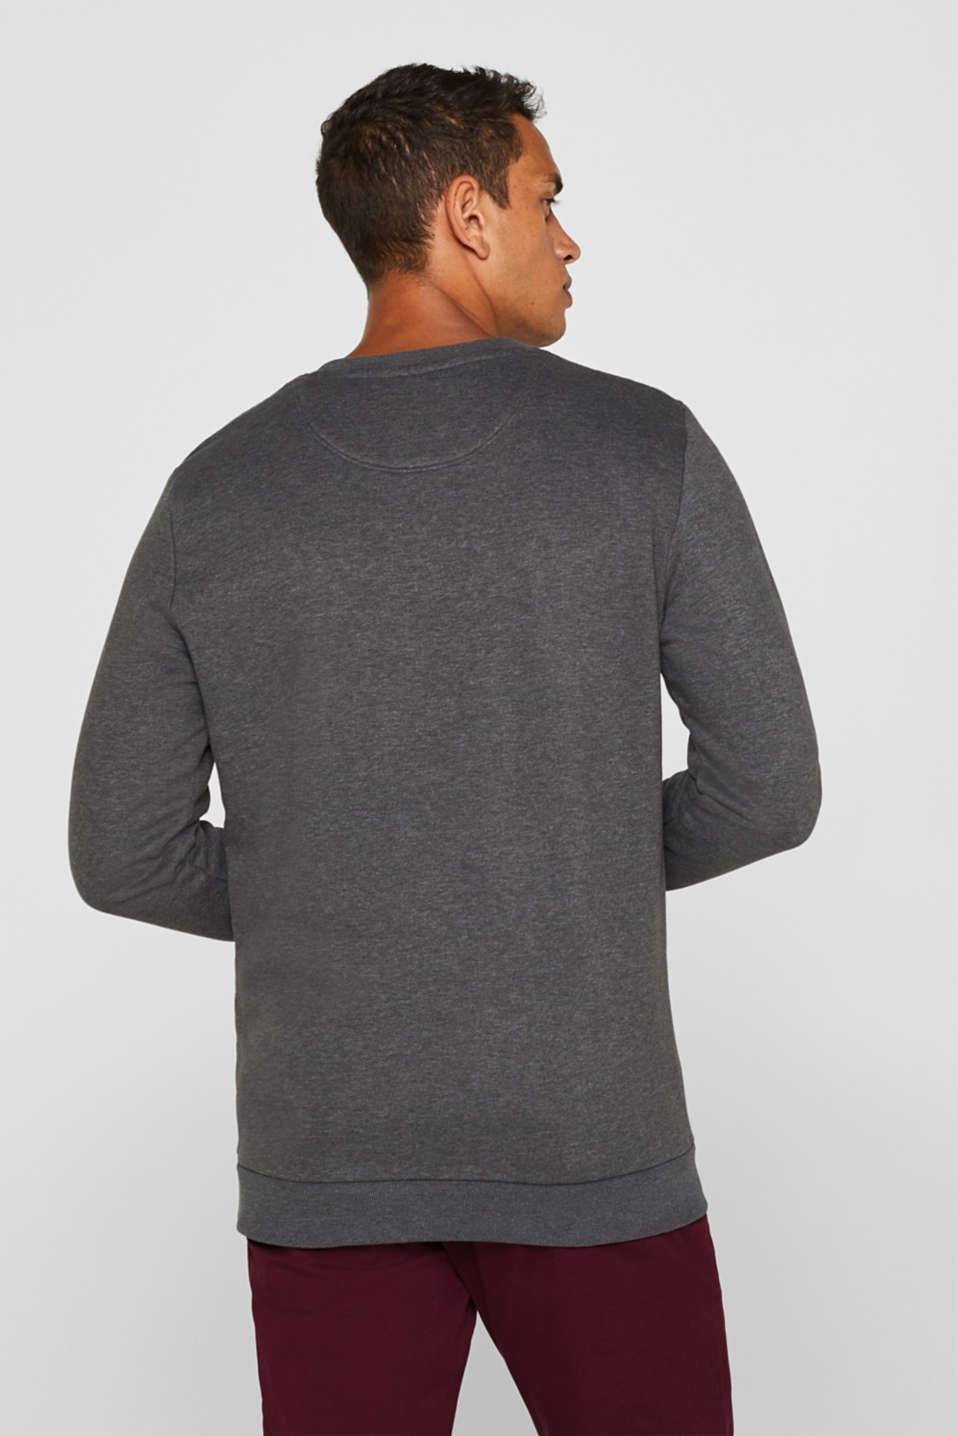 Blended cotton sweatshirt, DARK GREY, detail image number 2